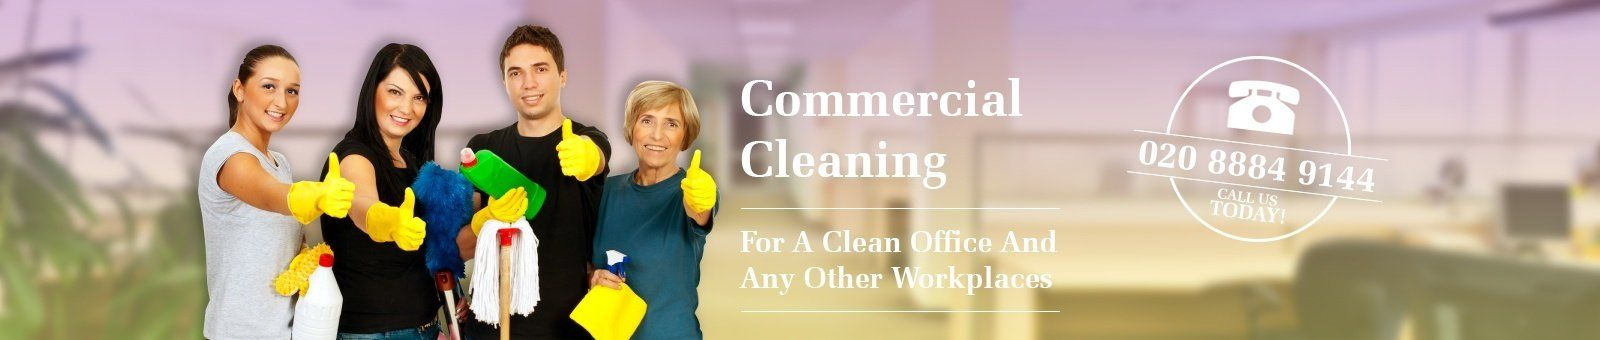 Commercial Cleaning Slide